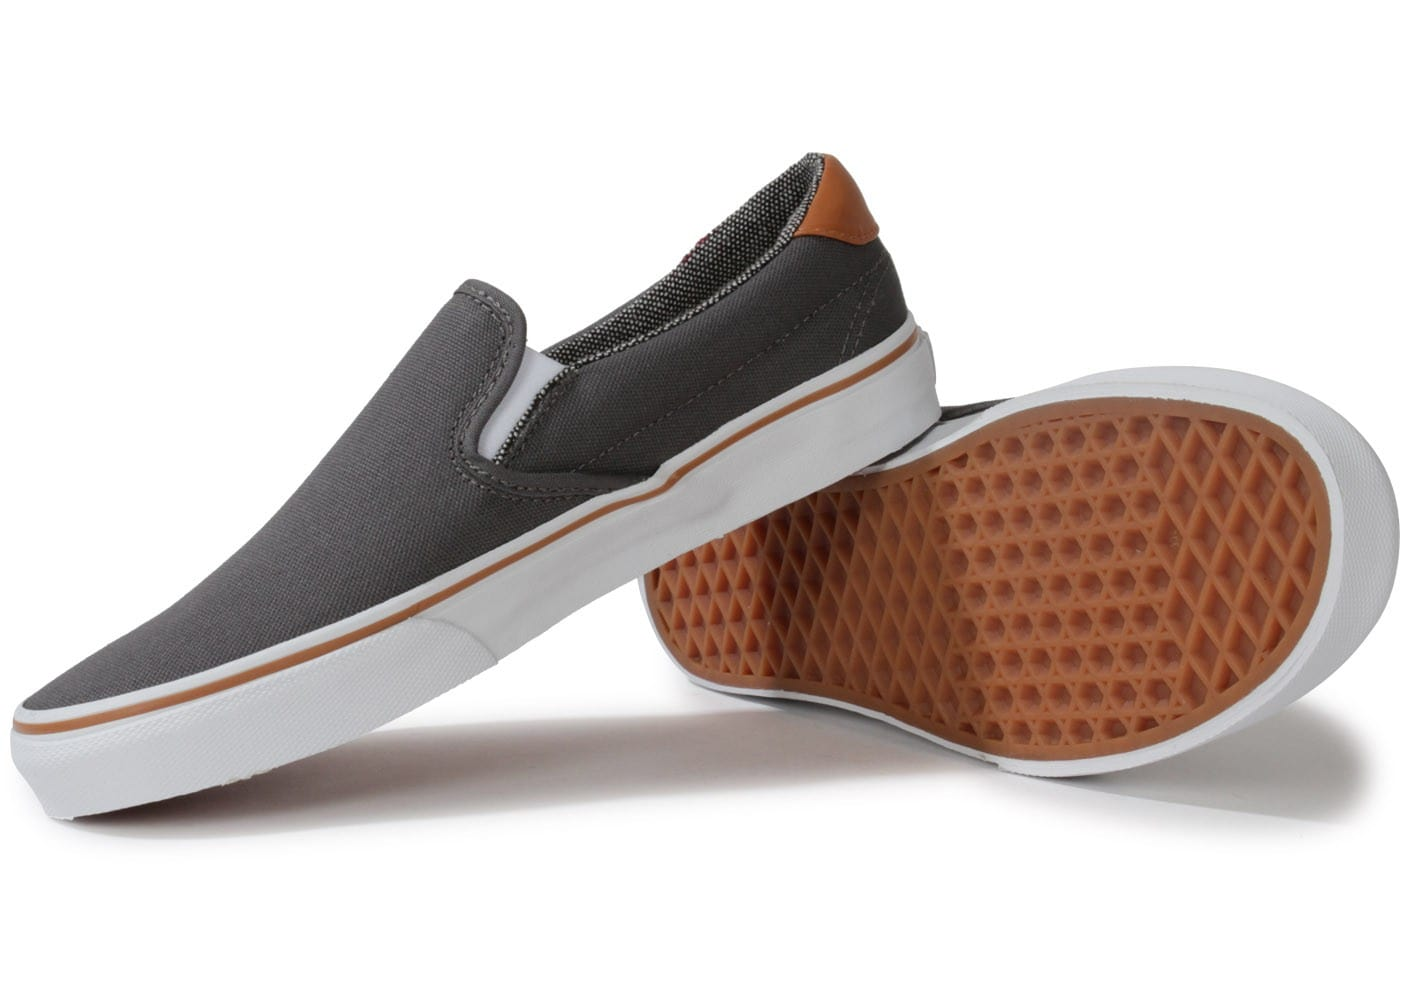 vans slip on 59 grise chaussures baskets homme chausport. Black Bedroom Furniture Sets. Home Design Ideas